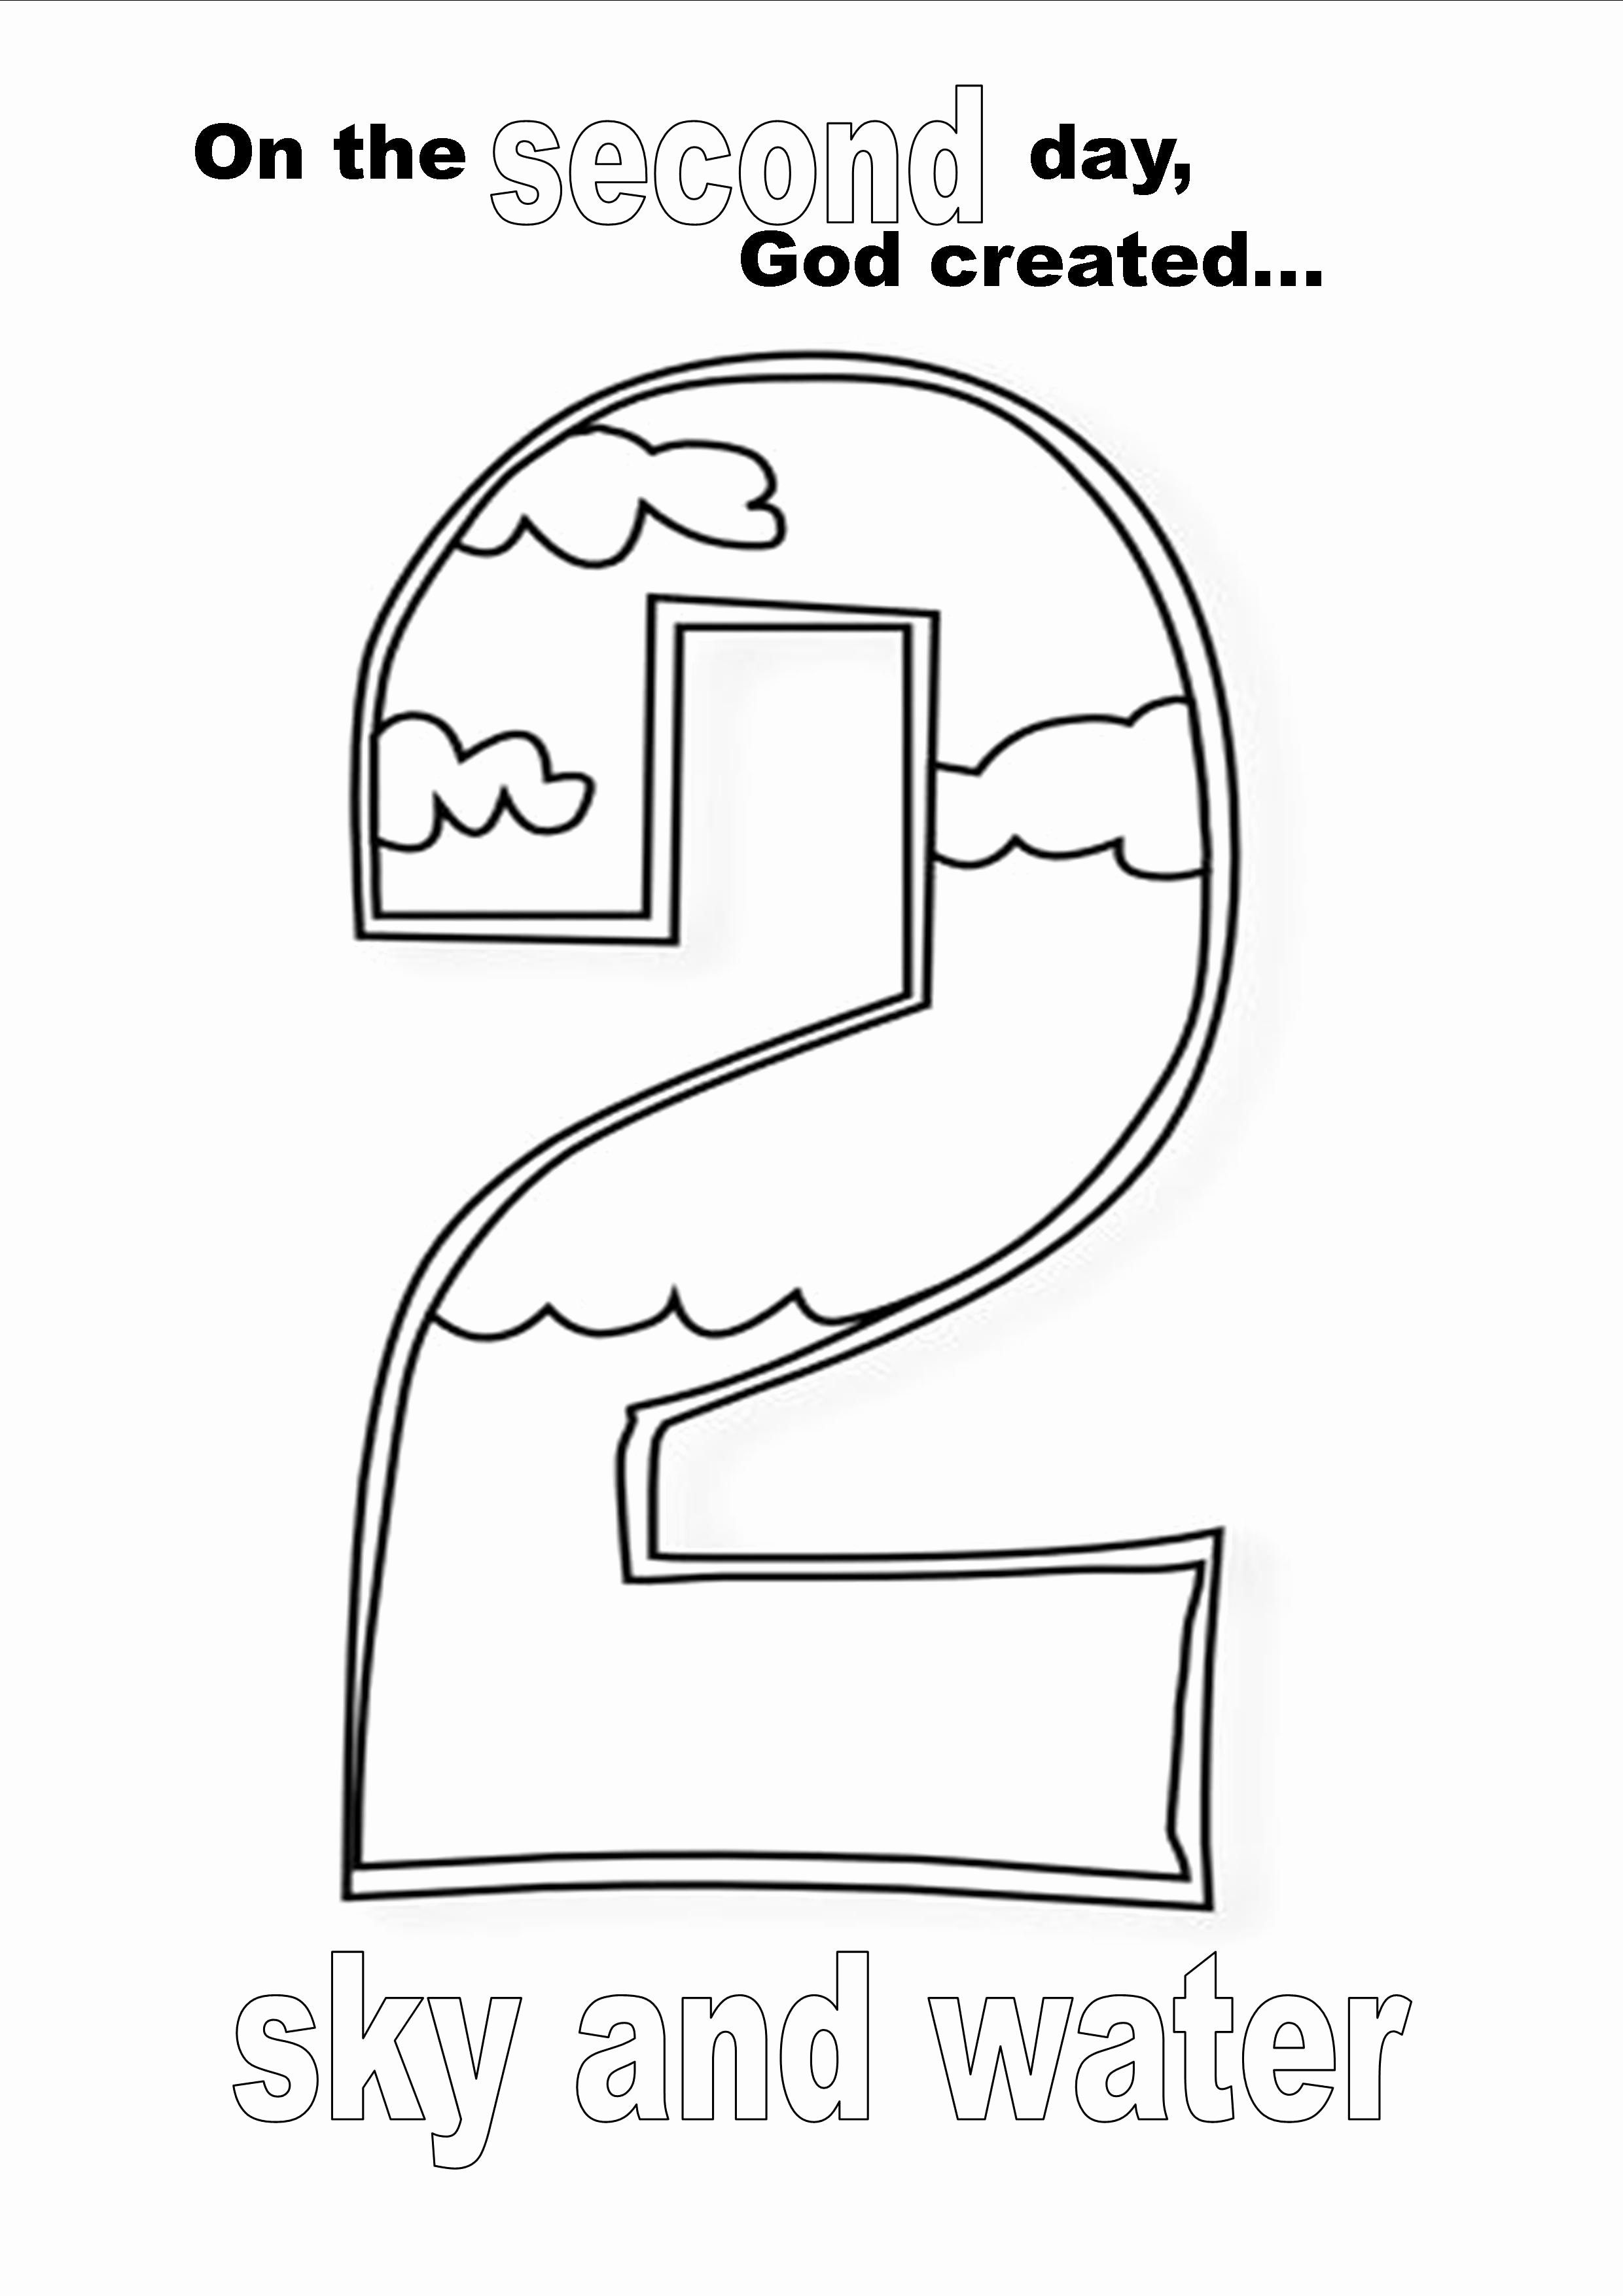 Coloring Activities For 1 Year Olds Beautiful Creation Day Two Coloring Page Kid Stuff In 2020 Creation Coloring Pages Days Of Creation New Year Coloring Pages